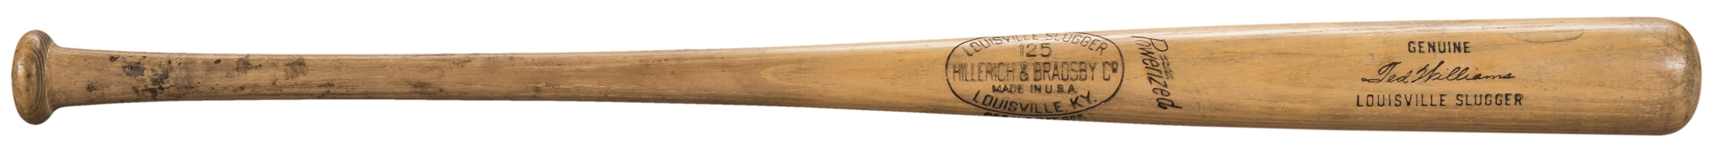 1955-57 Ted Williams Game Used and Signed Louisville Slugger W183 Model Bat (PSA/DNA GU 9, JSA & Beckett)